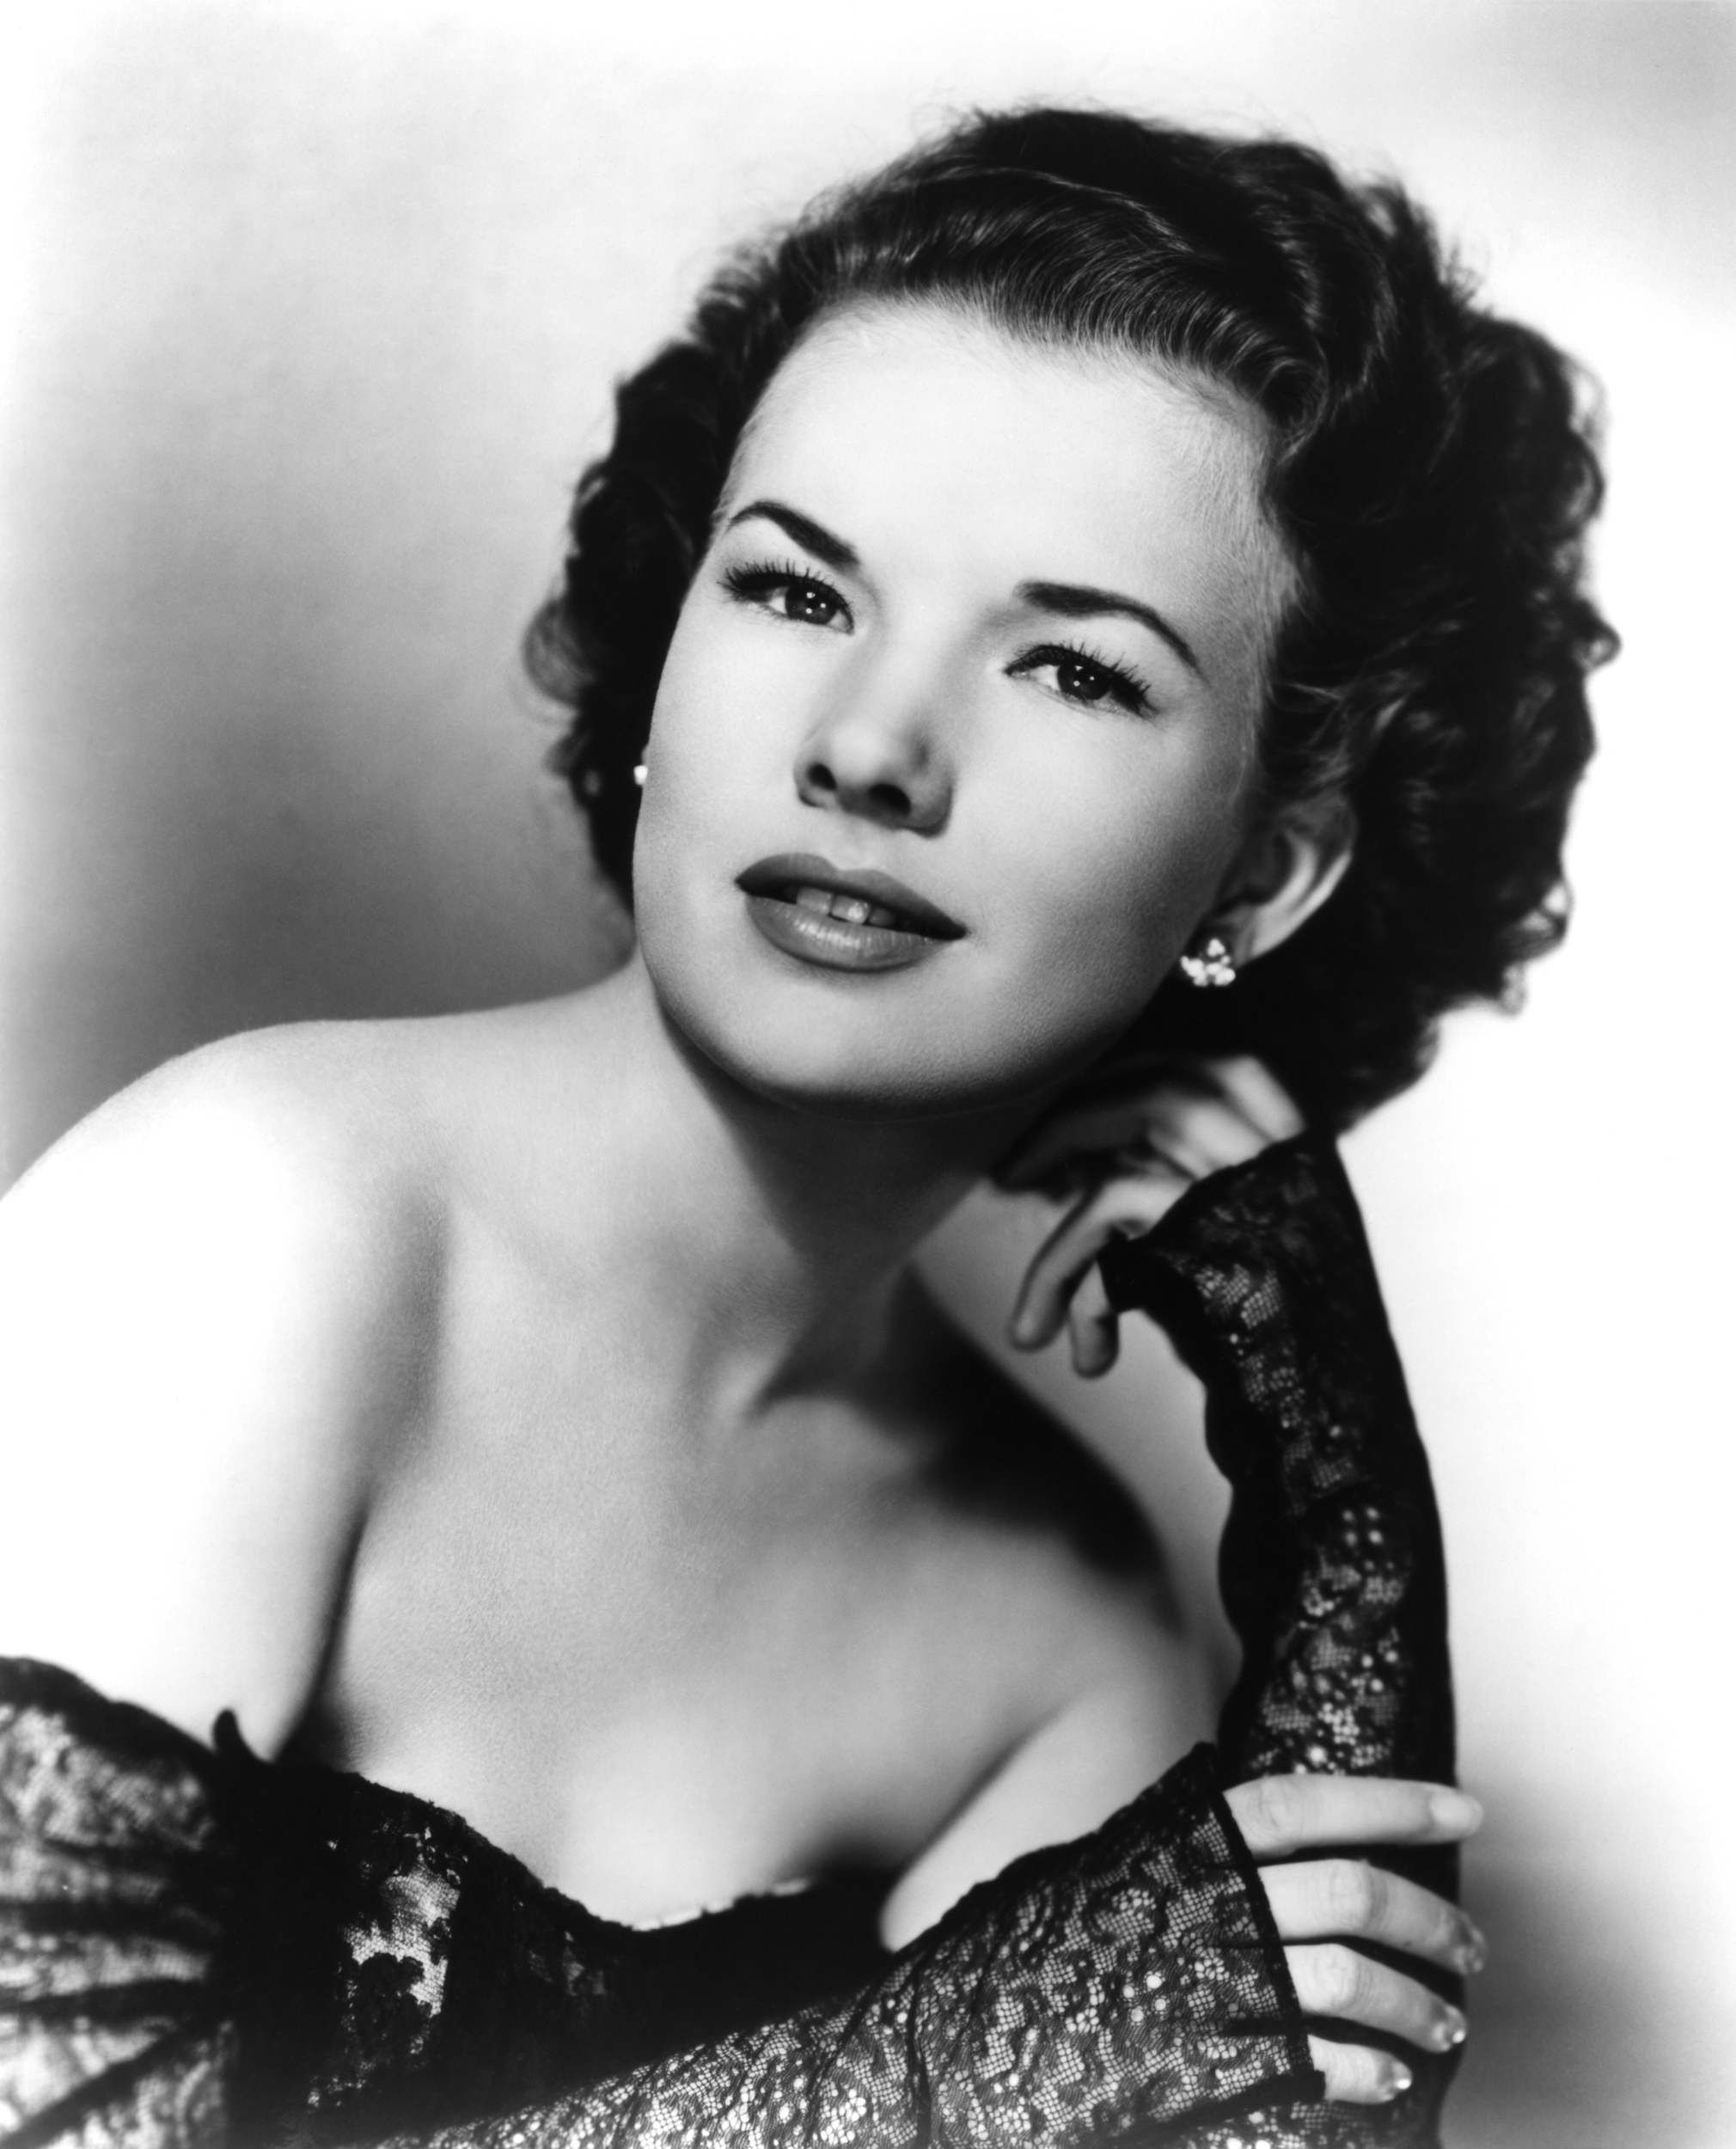 gale storm киевgale storm ресторан, gale storm киев отзывы, gale storm actress, gale storm киев, gale storm, gale storm dark moon, gale storm i hear you knocking, gale storm 8 subwoofer, gale storm discography, gale storm show youtube, gale storm difference, gale storm show, gale storm my little margie, gale storm biography, gale storm imdb, gale storm 8, gale storm songs, gale storm ivory tower, gale storm 8 subwoofer review, gale storm weather